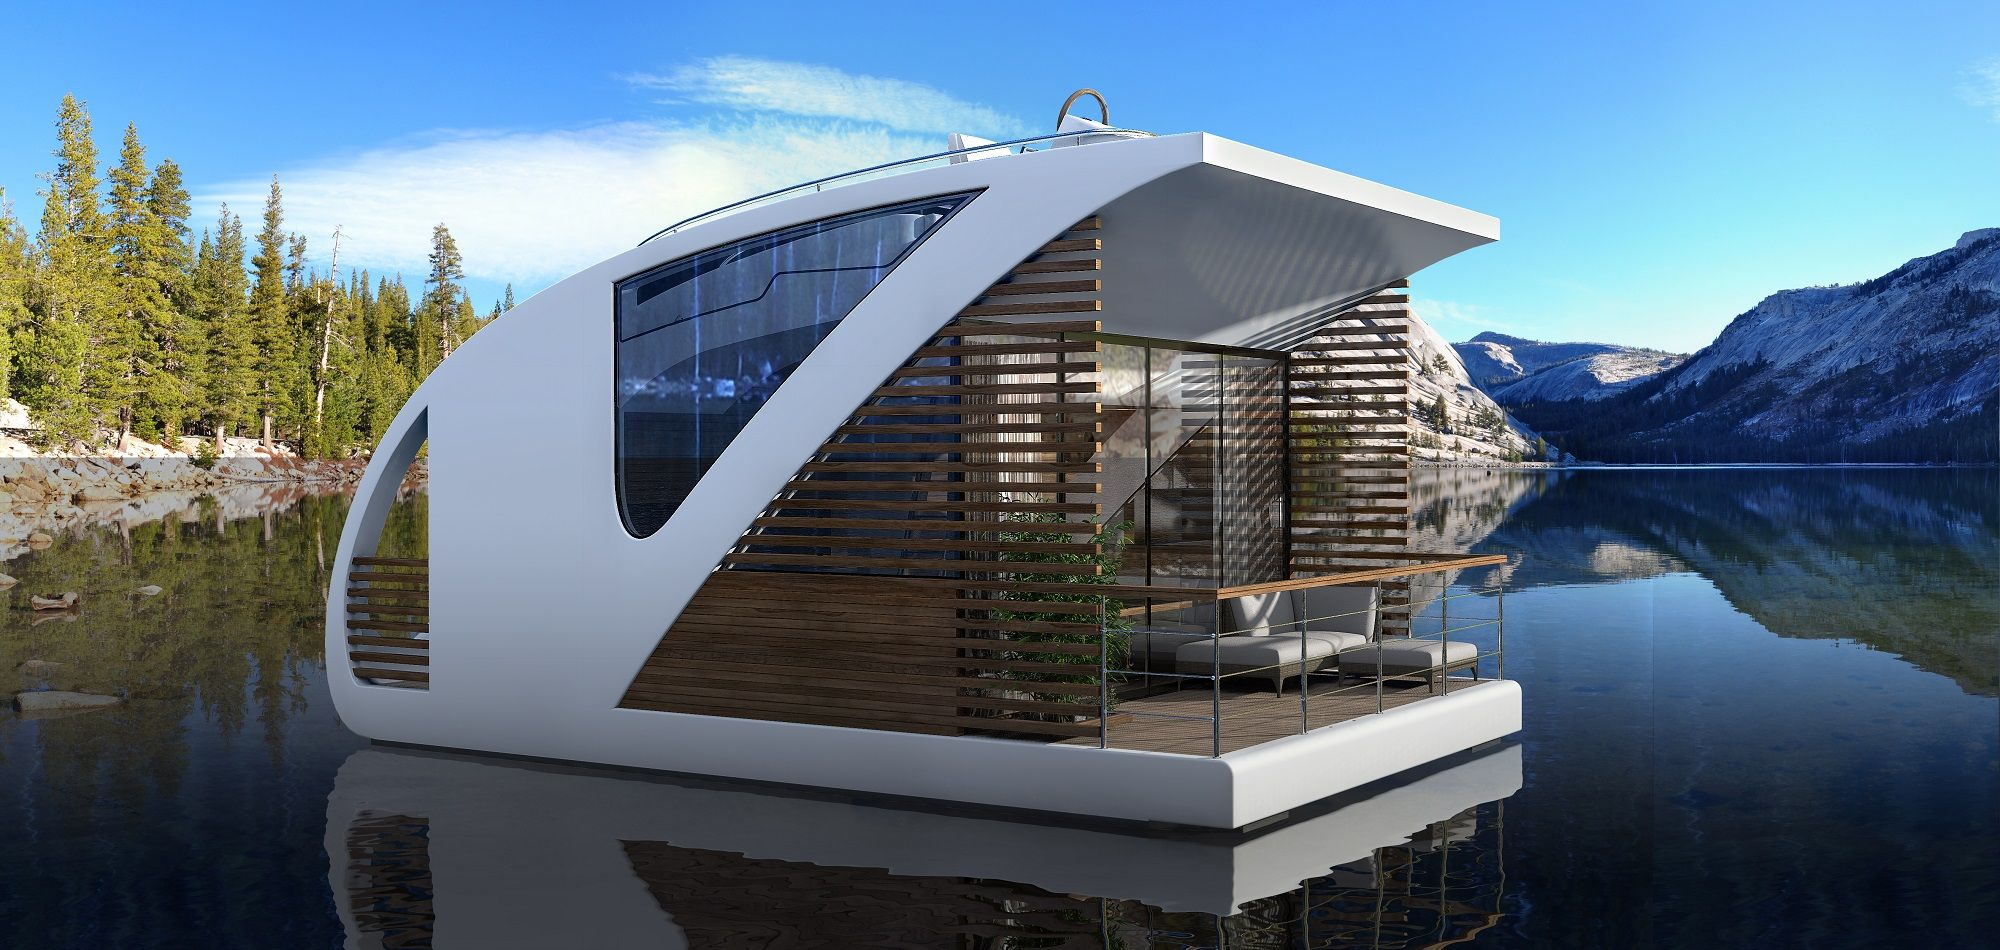 Floating Catamaran Hotels Are Perfect For A Low Impact Getaway Floating Hotel Floating House Hotel Concept